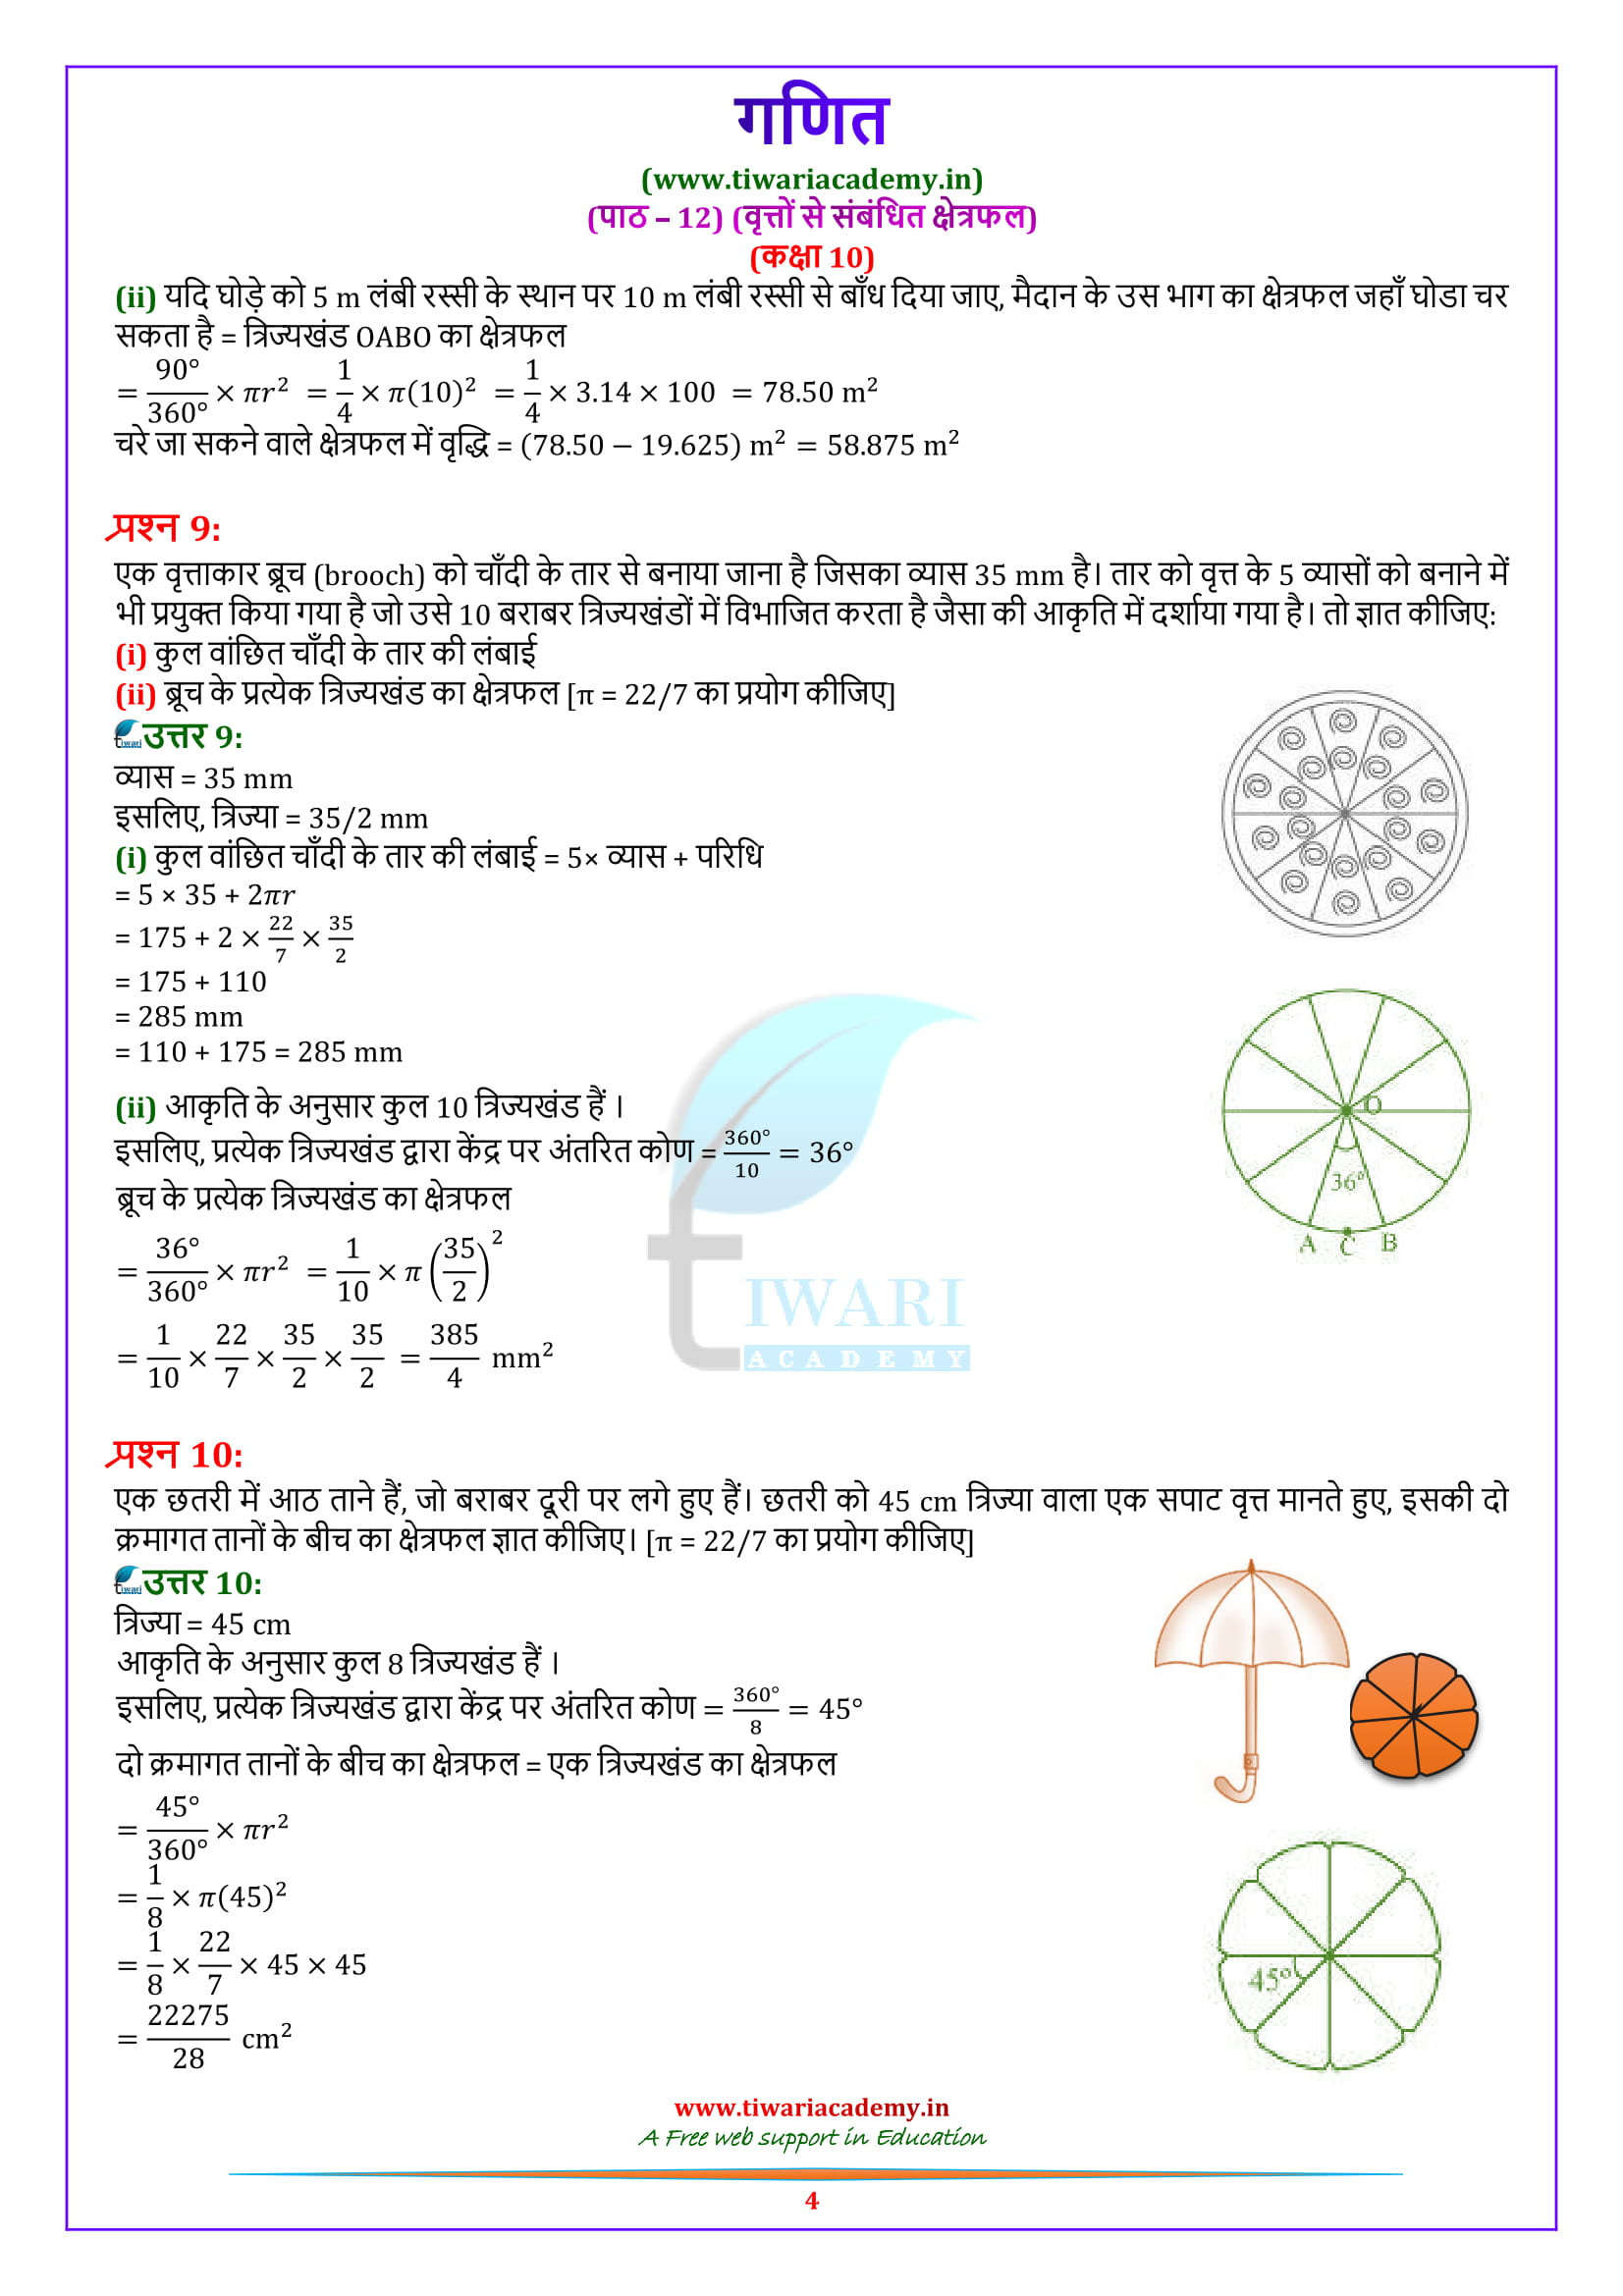 Class 10 Maths Exercise 12.2 Solutions all question answers